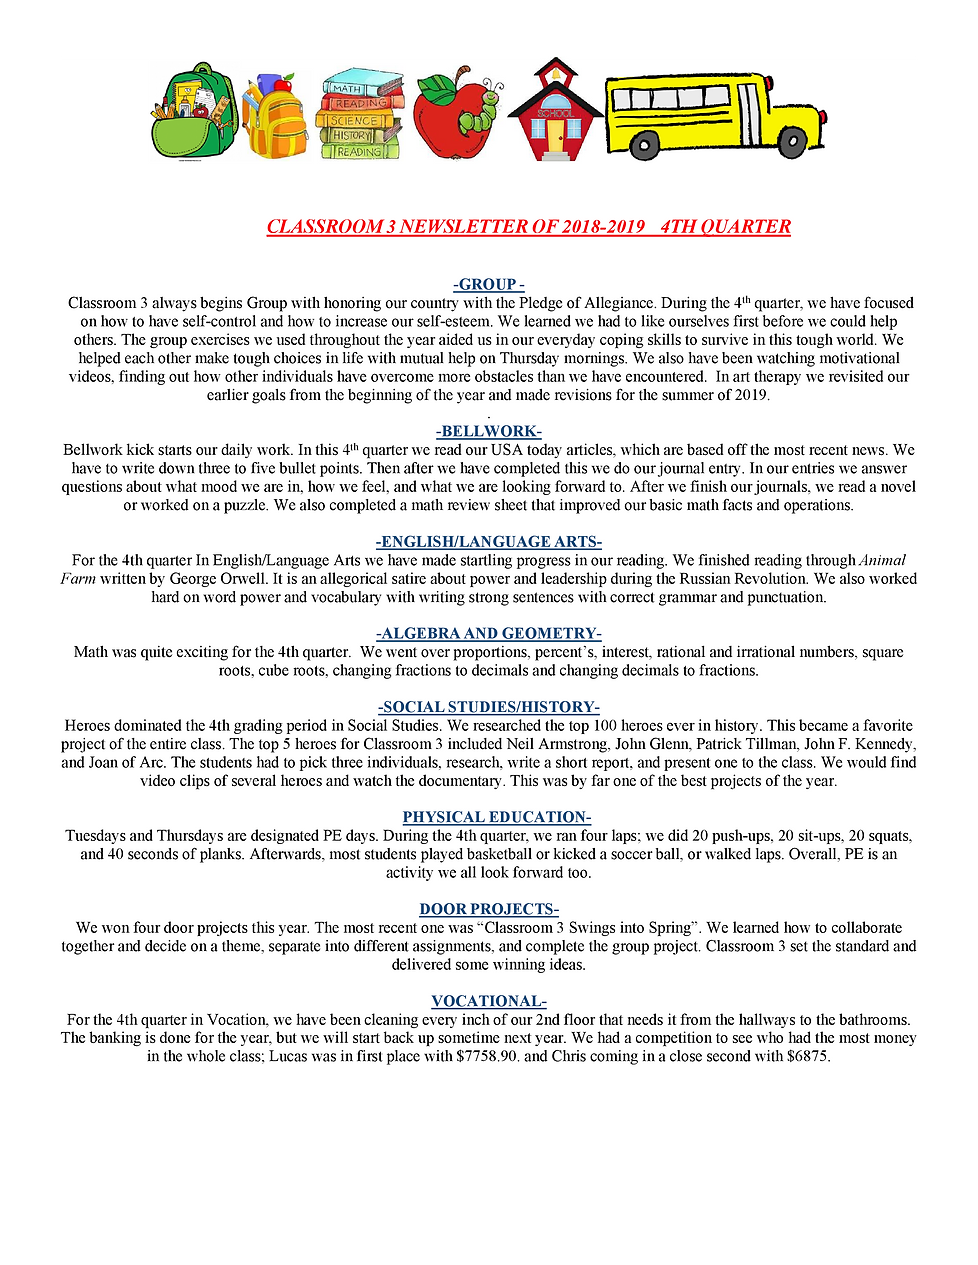 Classroom 3 Newsletter 4Q of 2019 (2)-0.